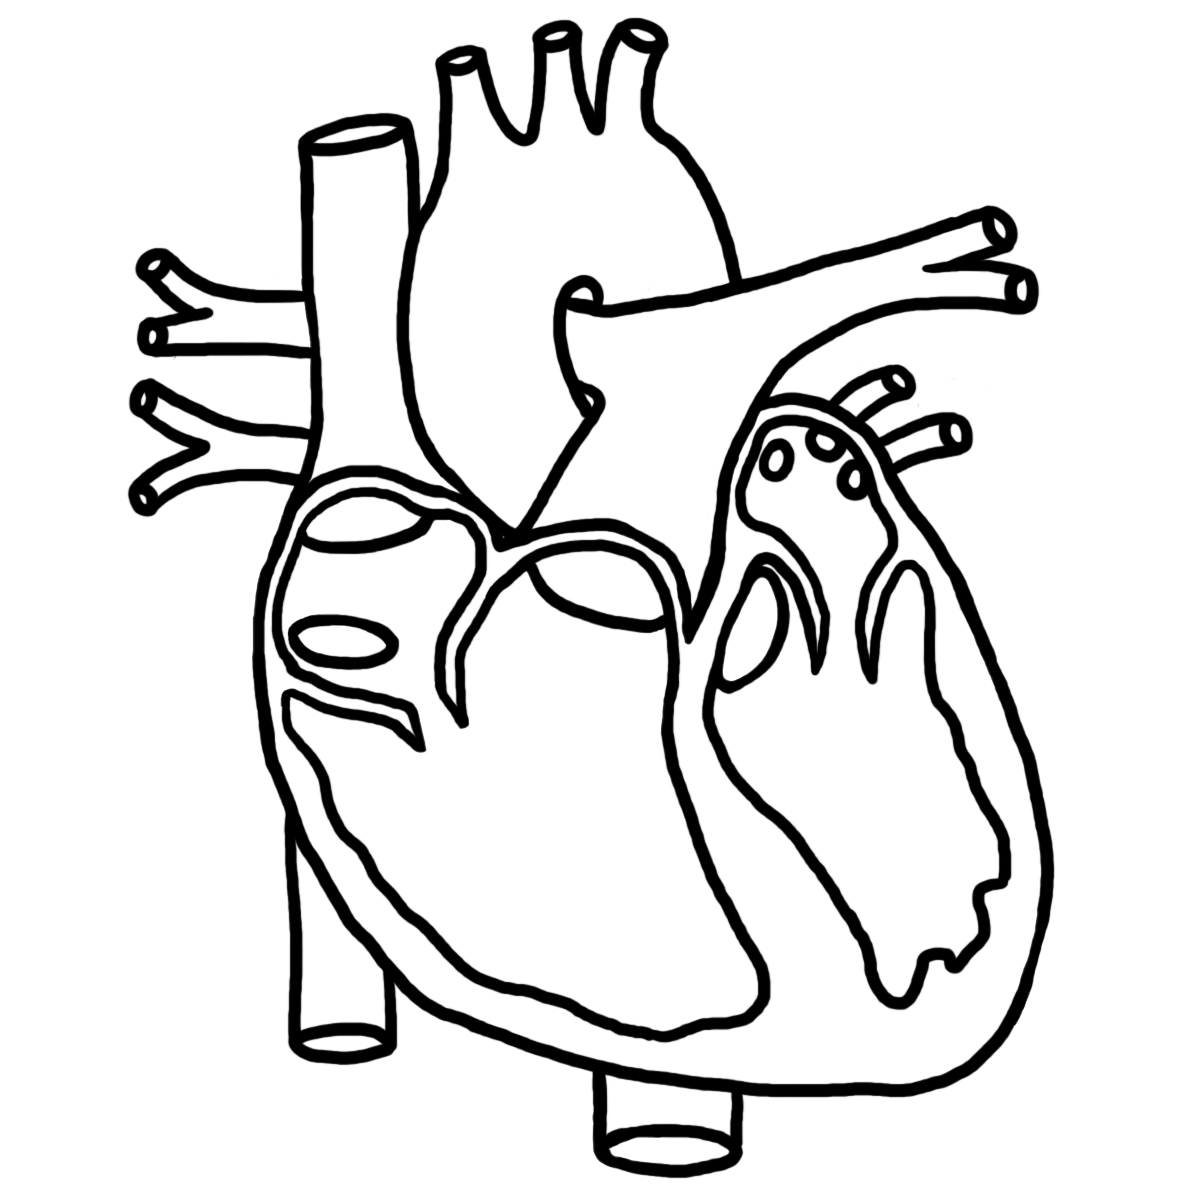 Human Heart Outline